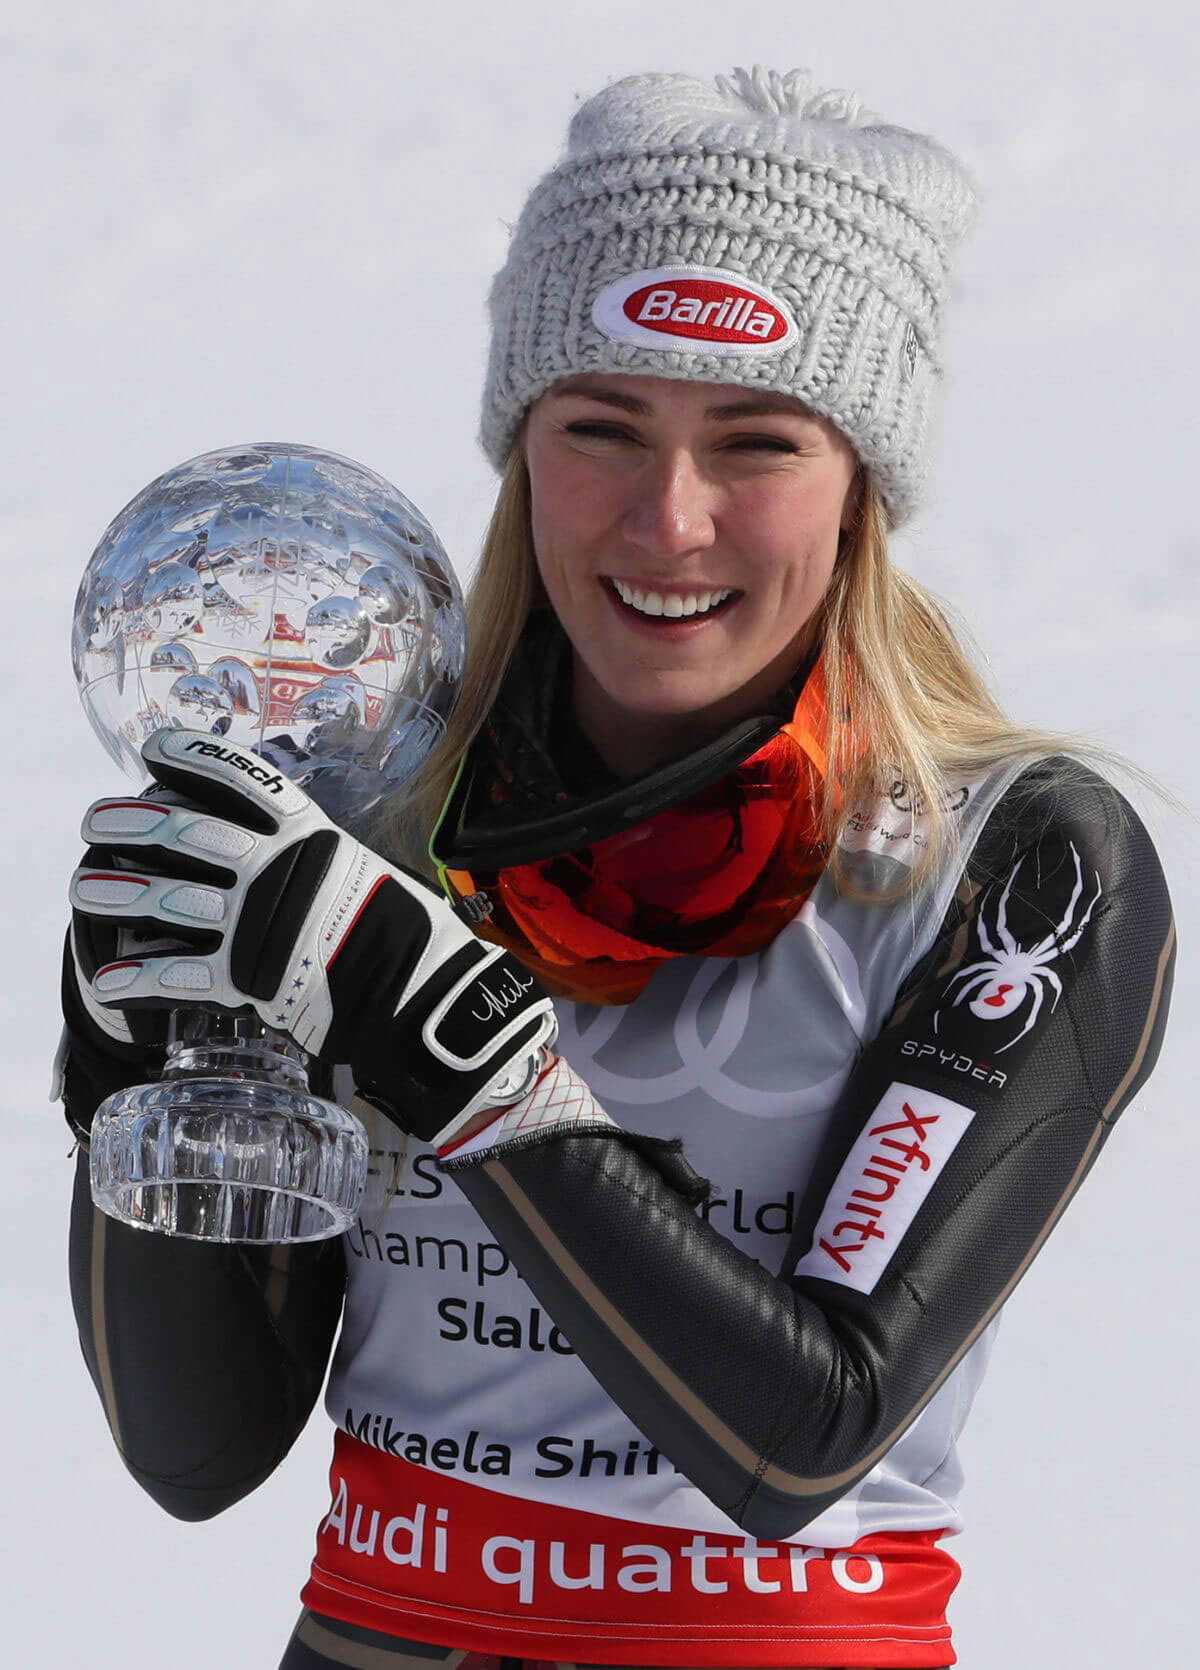 Mikaela Shiffrin Stills Wins Audi FIS Alpine Ski World Cup Final in Are 2018/03/17